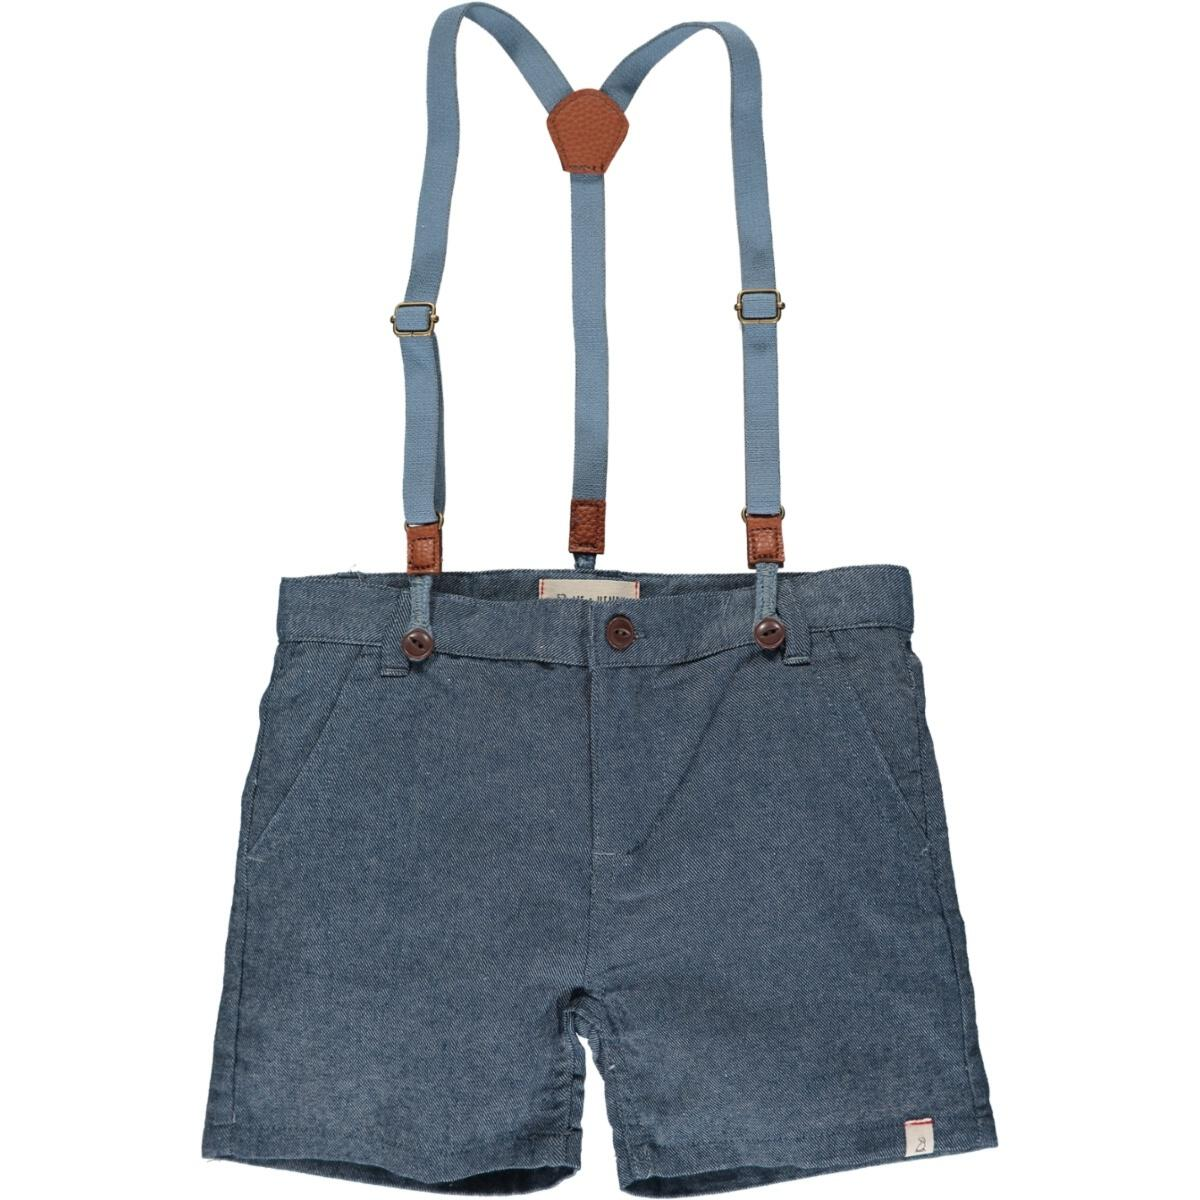 CAPTAIN shorts with suspenders